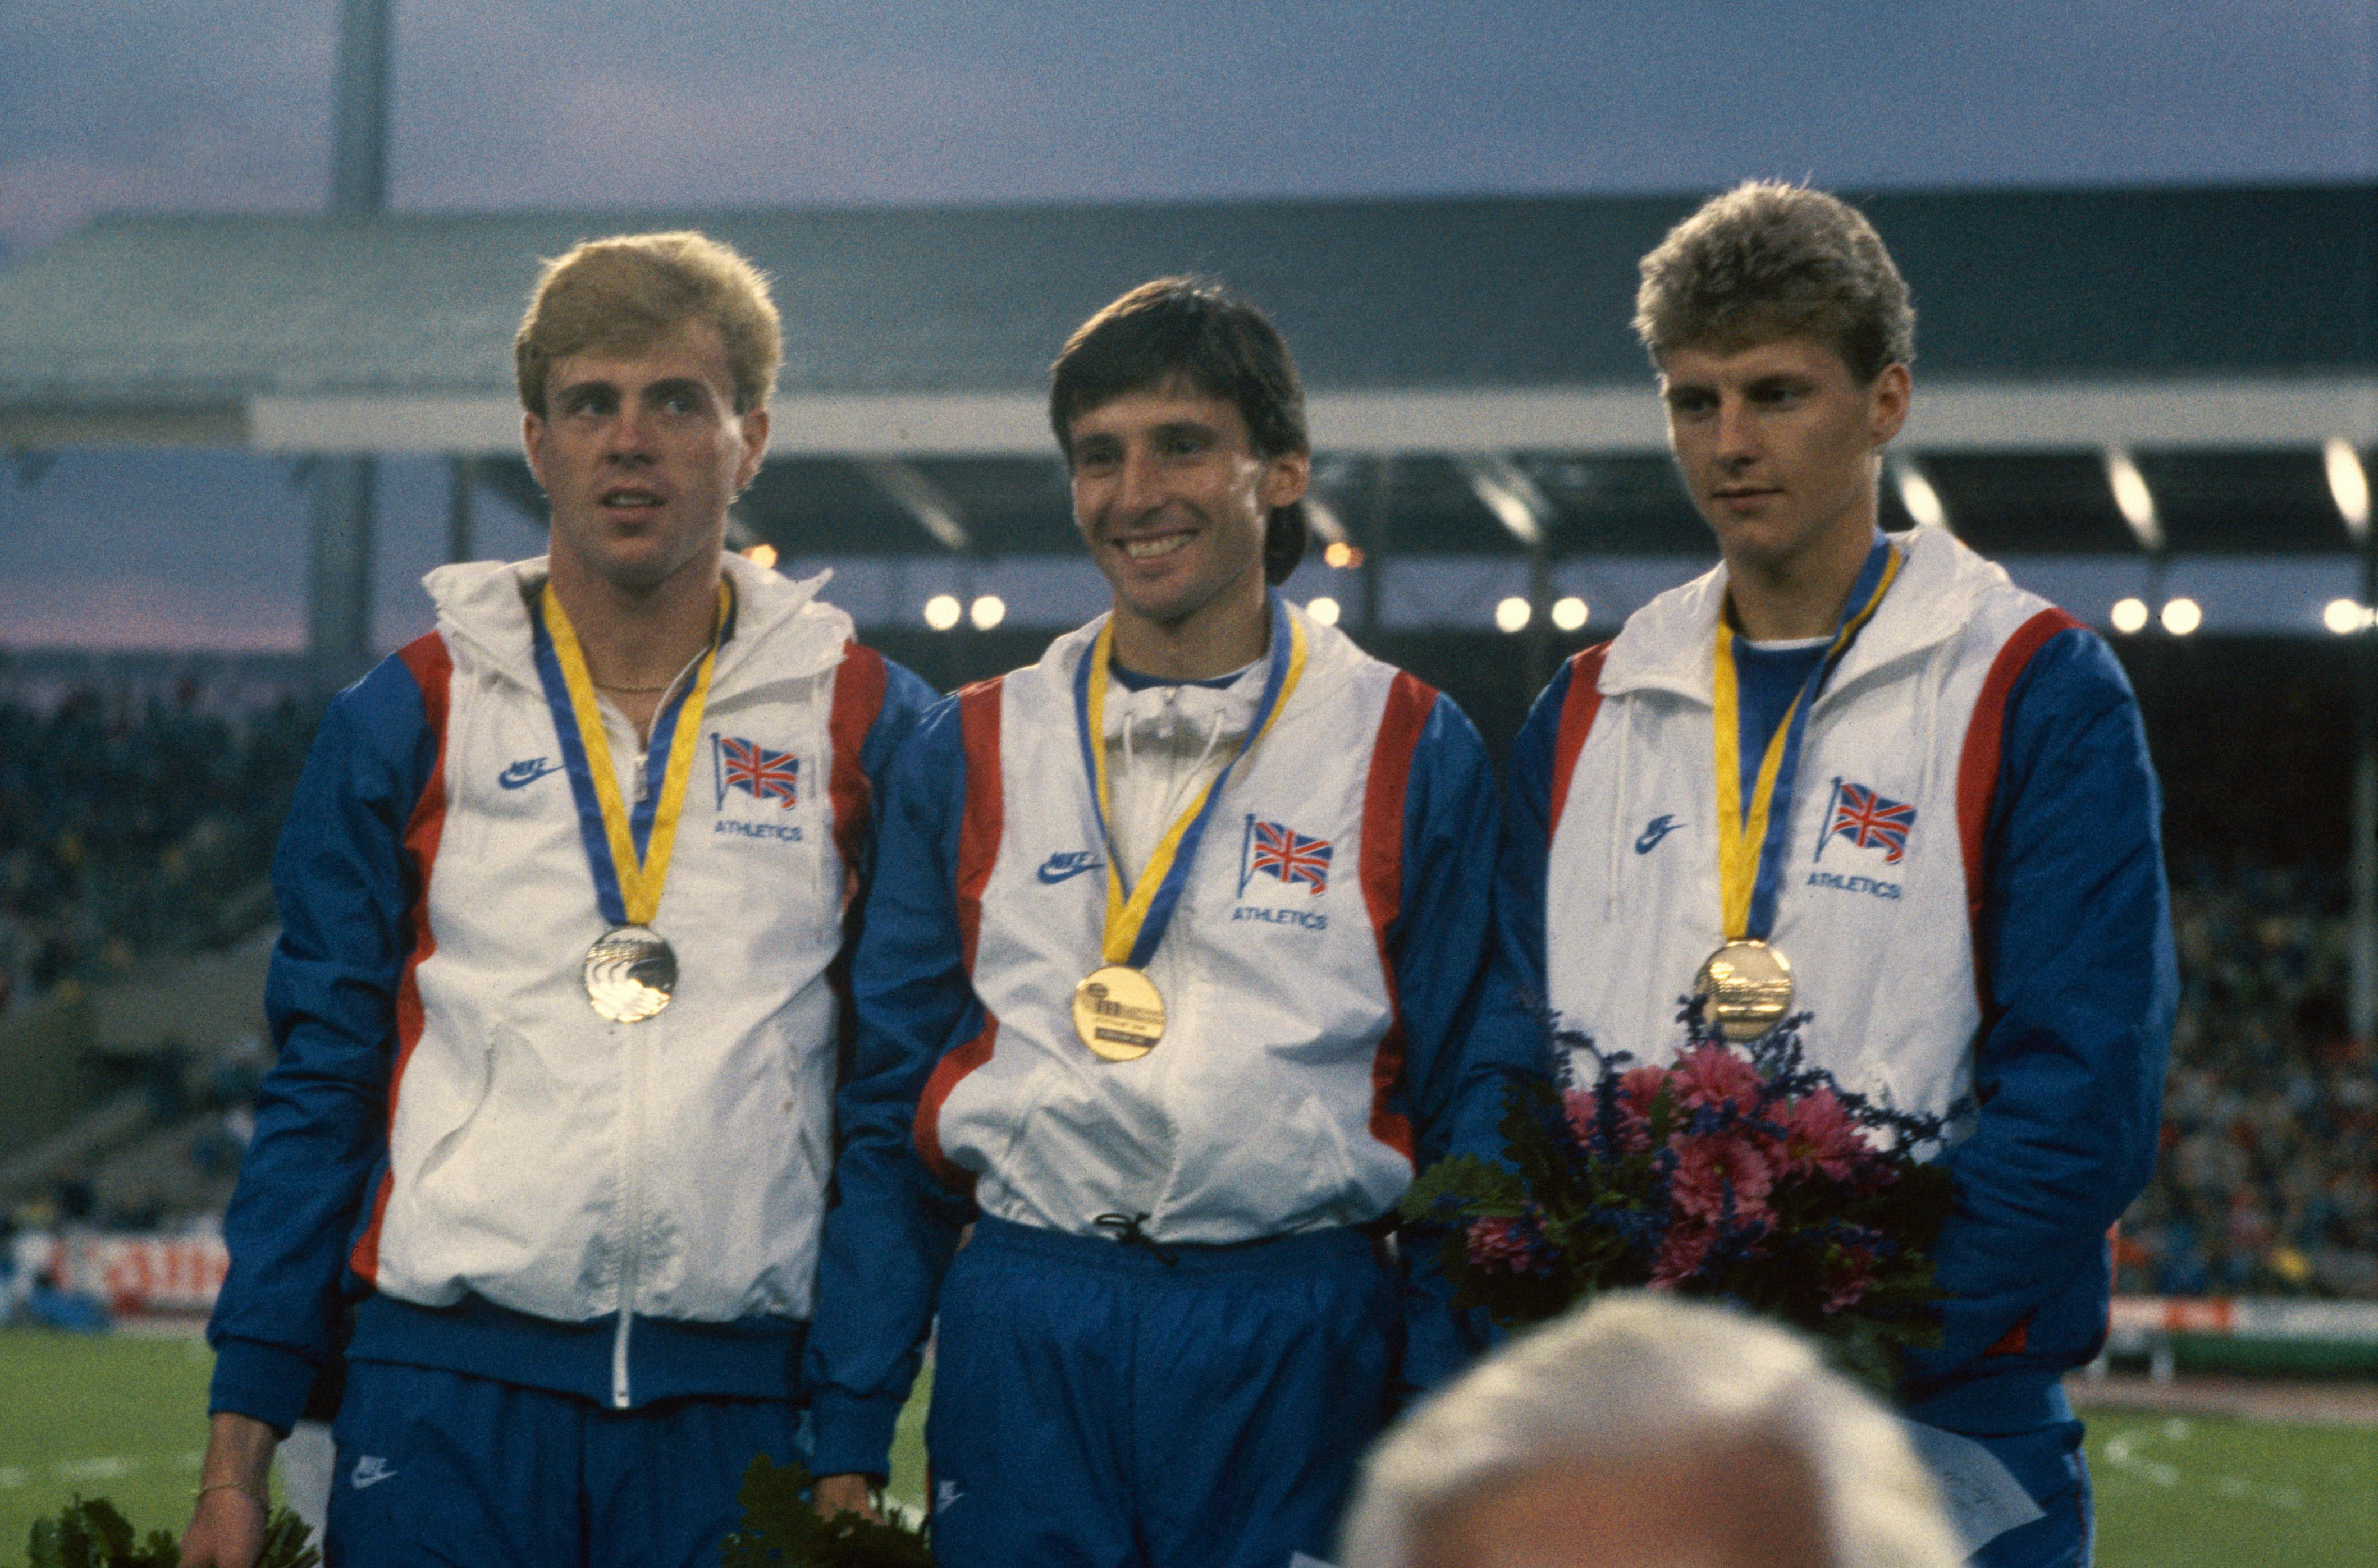 Coe, middle, and Cram, right, at the European Athletics Championships in 1986